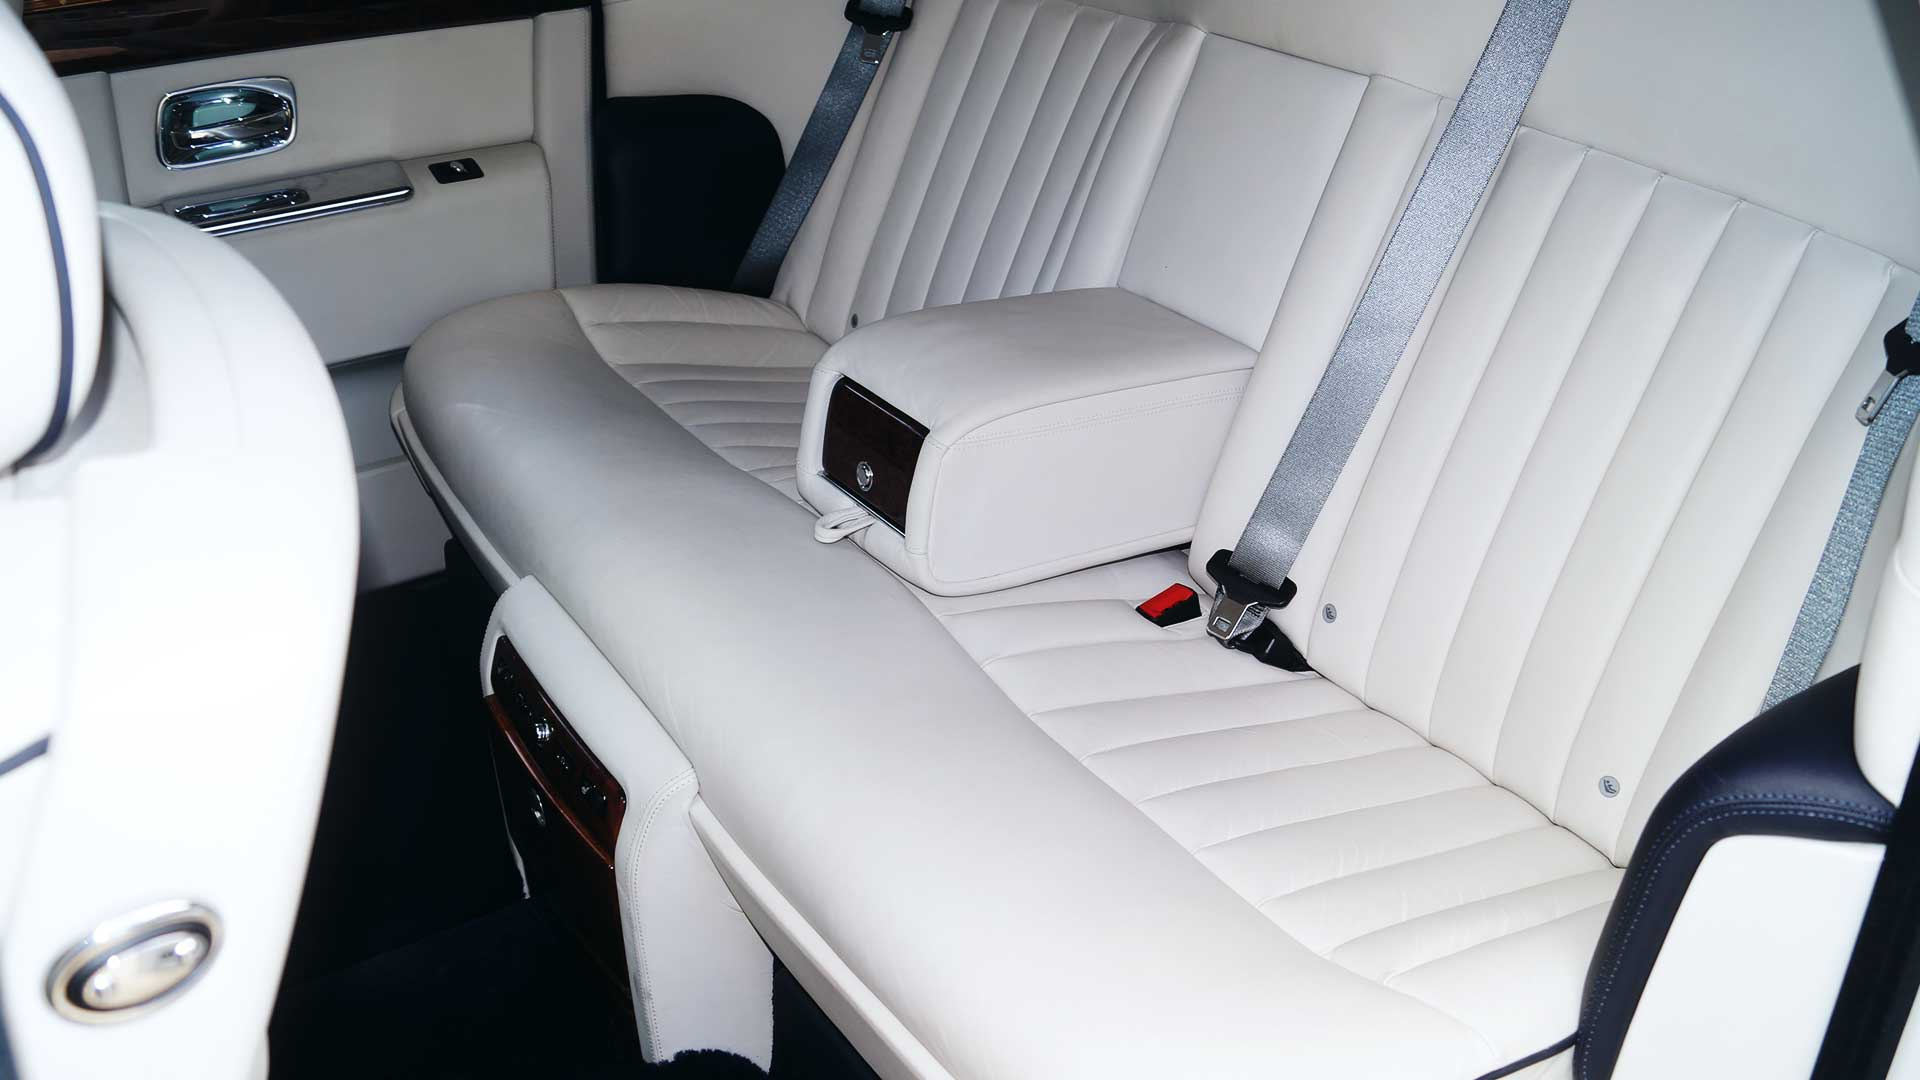 Rolls-Royce Phantom - Rear Seating